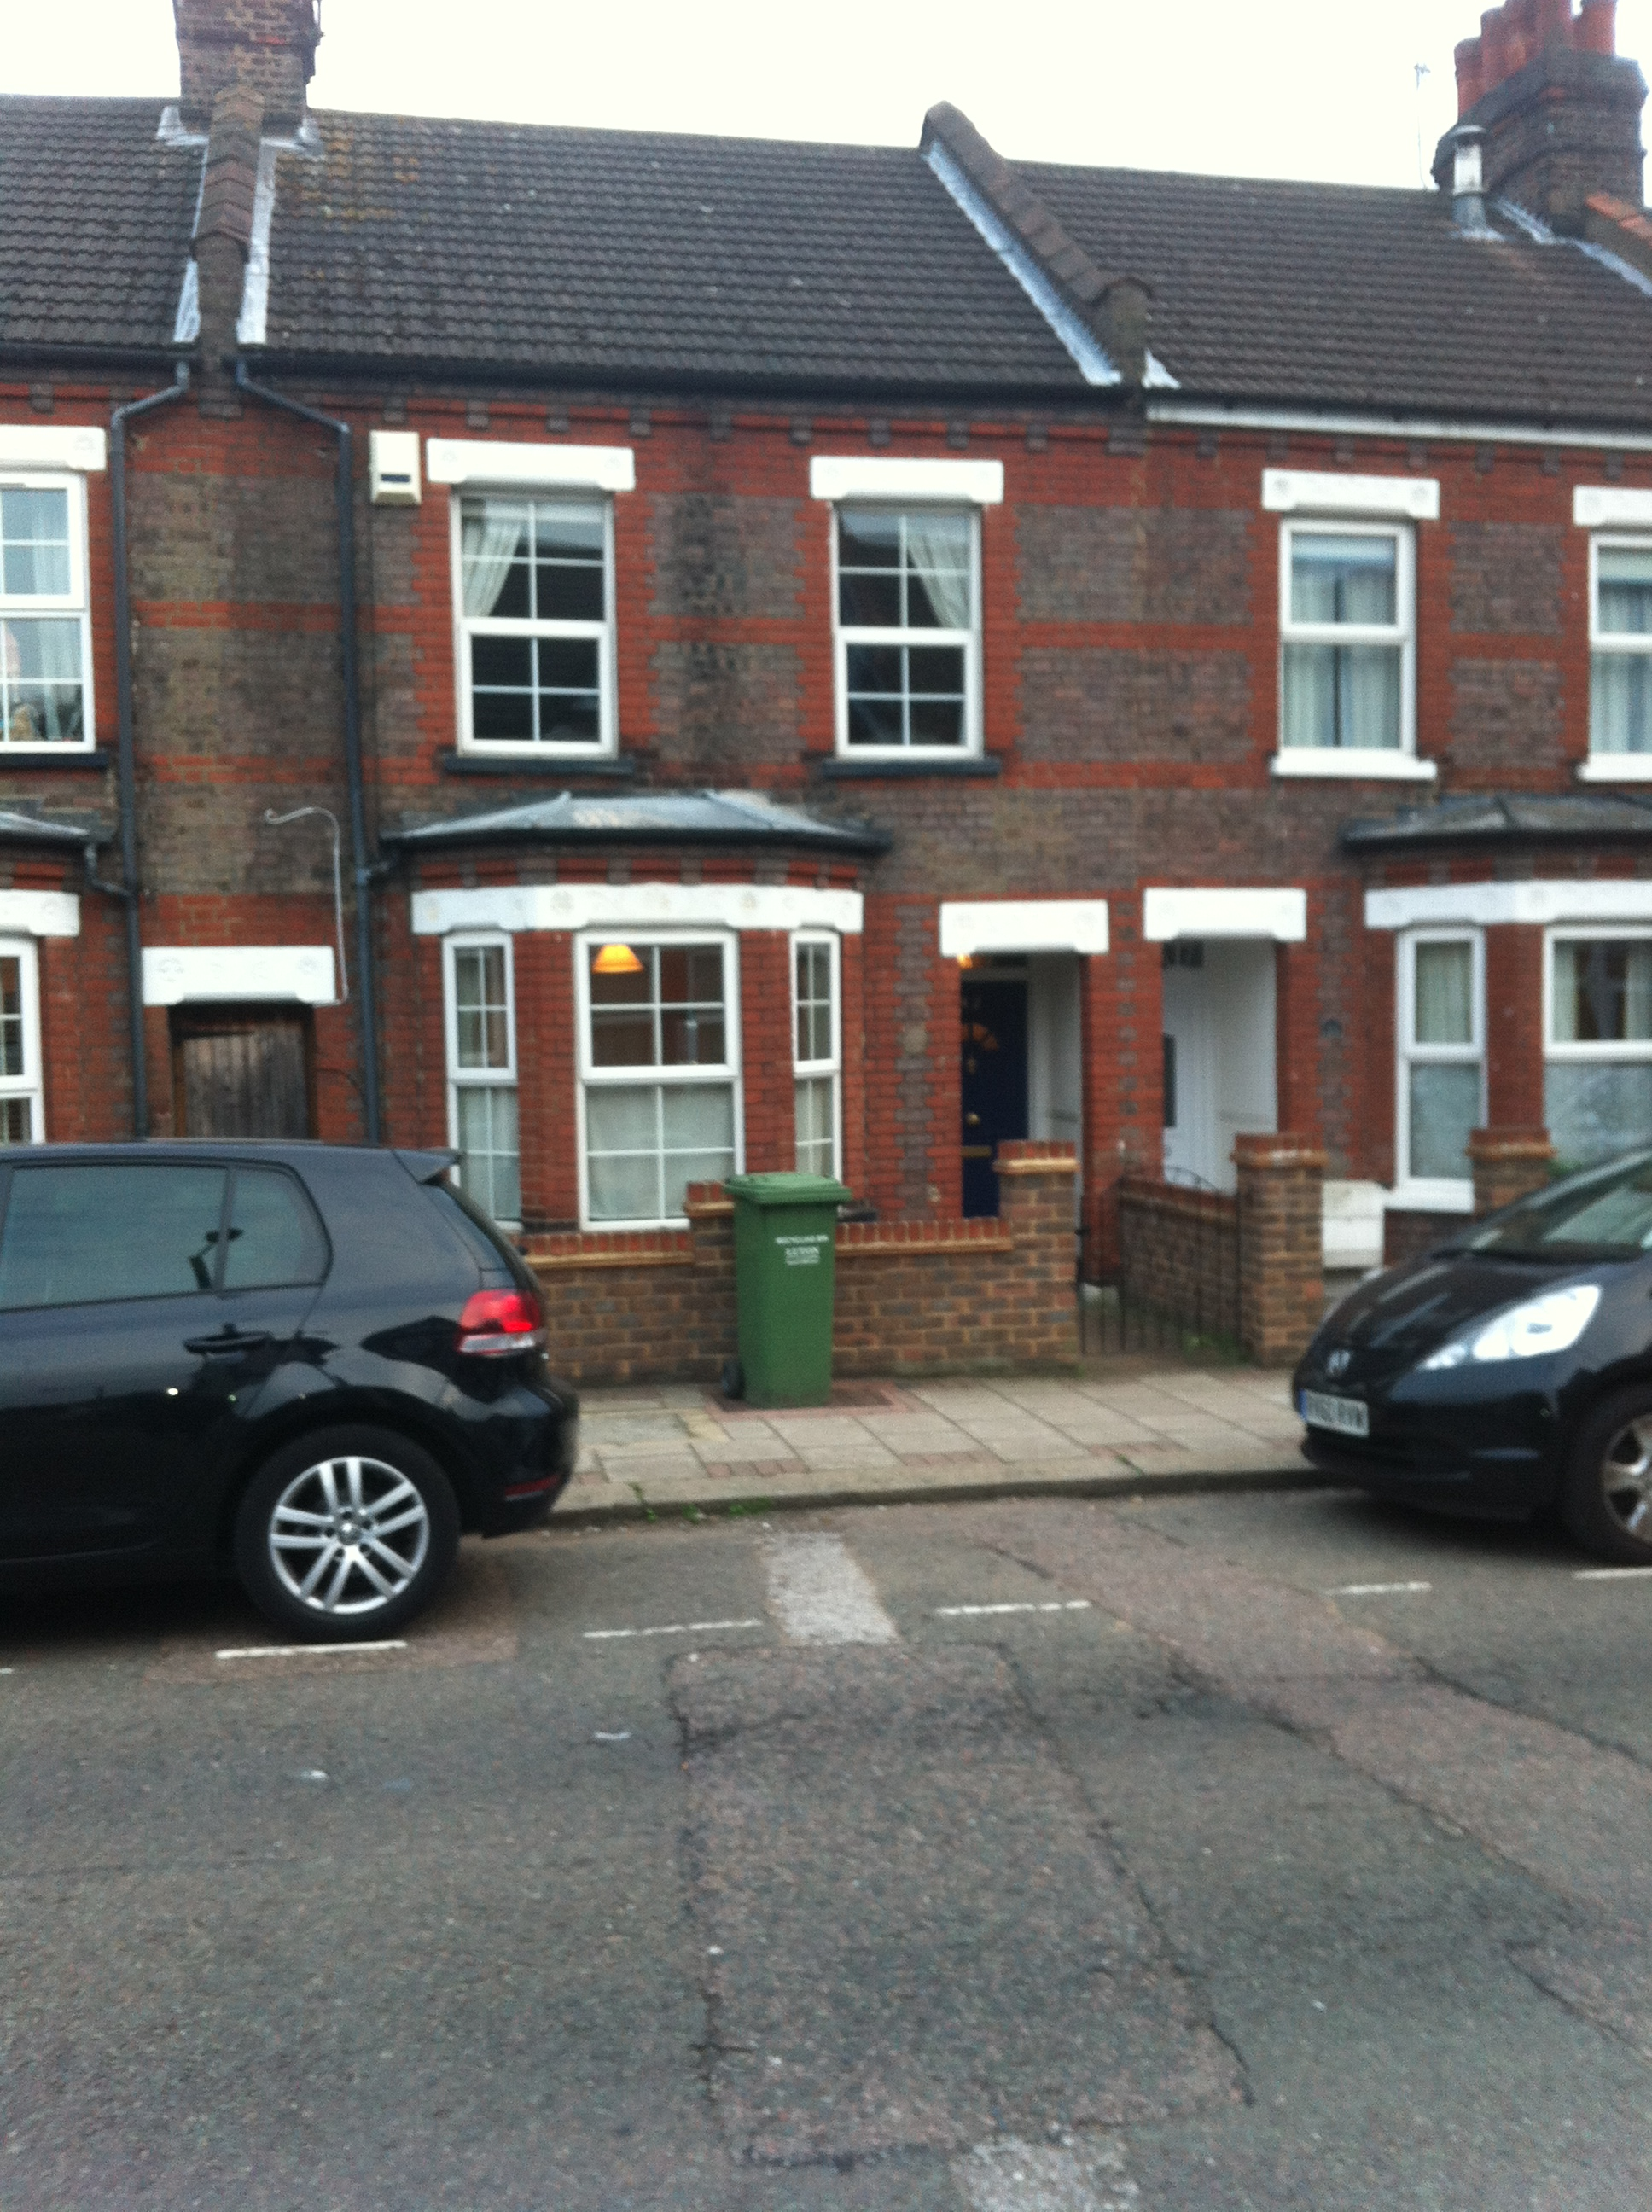 Marvelous 3 Bed House Terraced To Rent Clarendon Road Luton Lu2 7Fb Home Interior And Landscaping Pimpapssignezvosmurscom